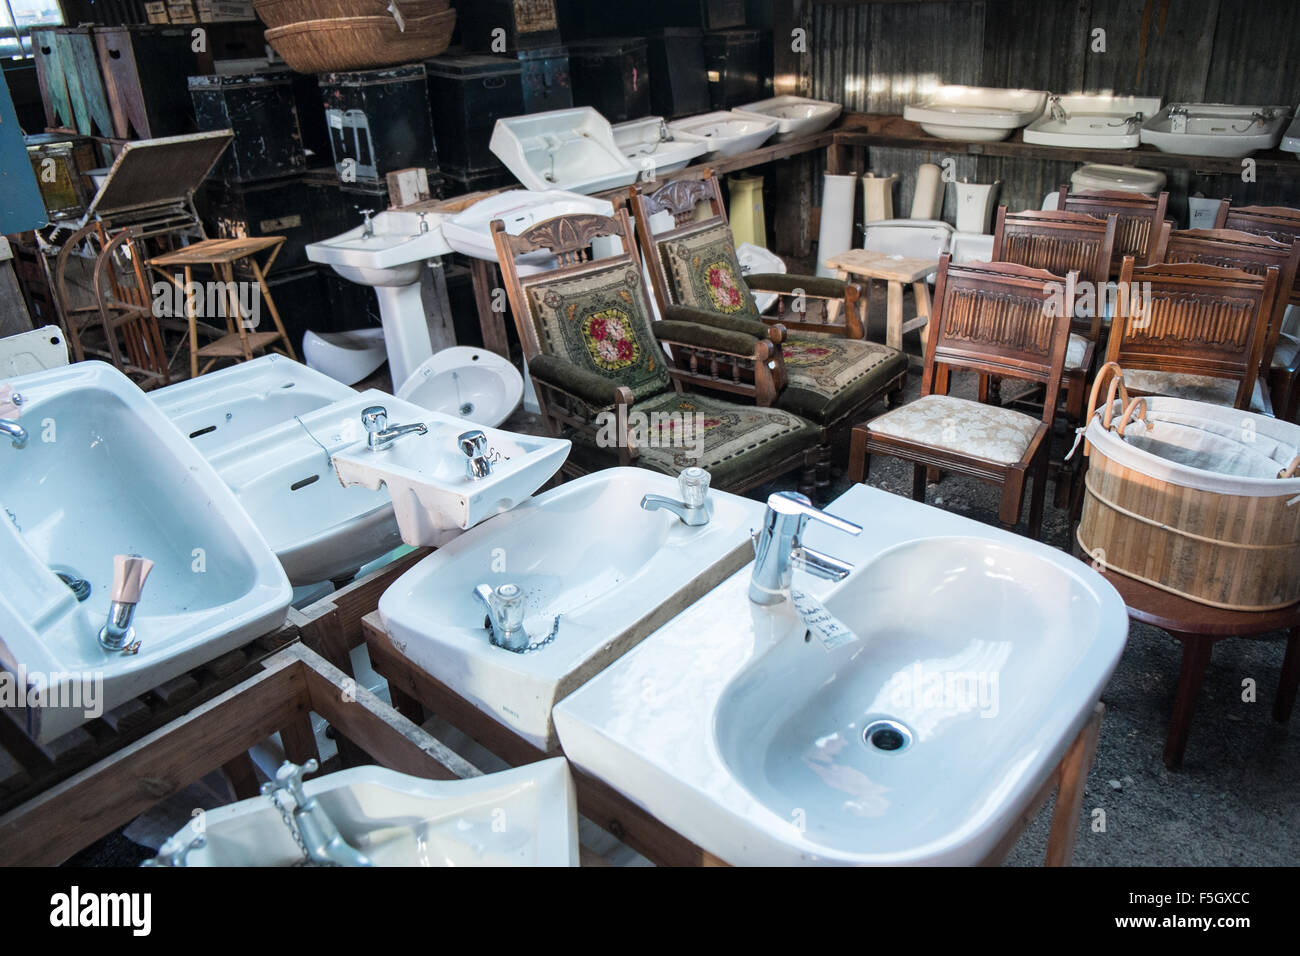 Sinks.Wells,Reclamation,yard,recycling,Somerset,England,   Stock